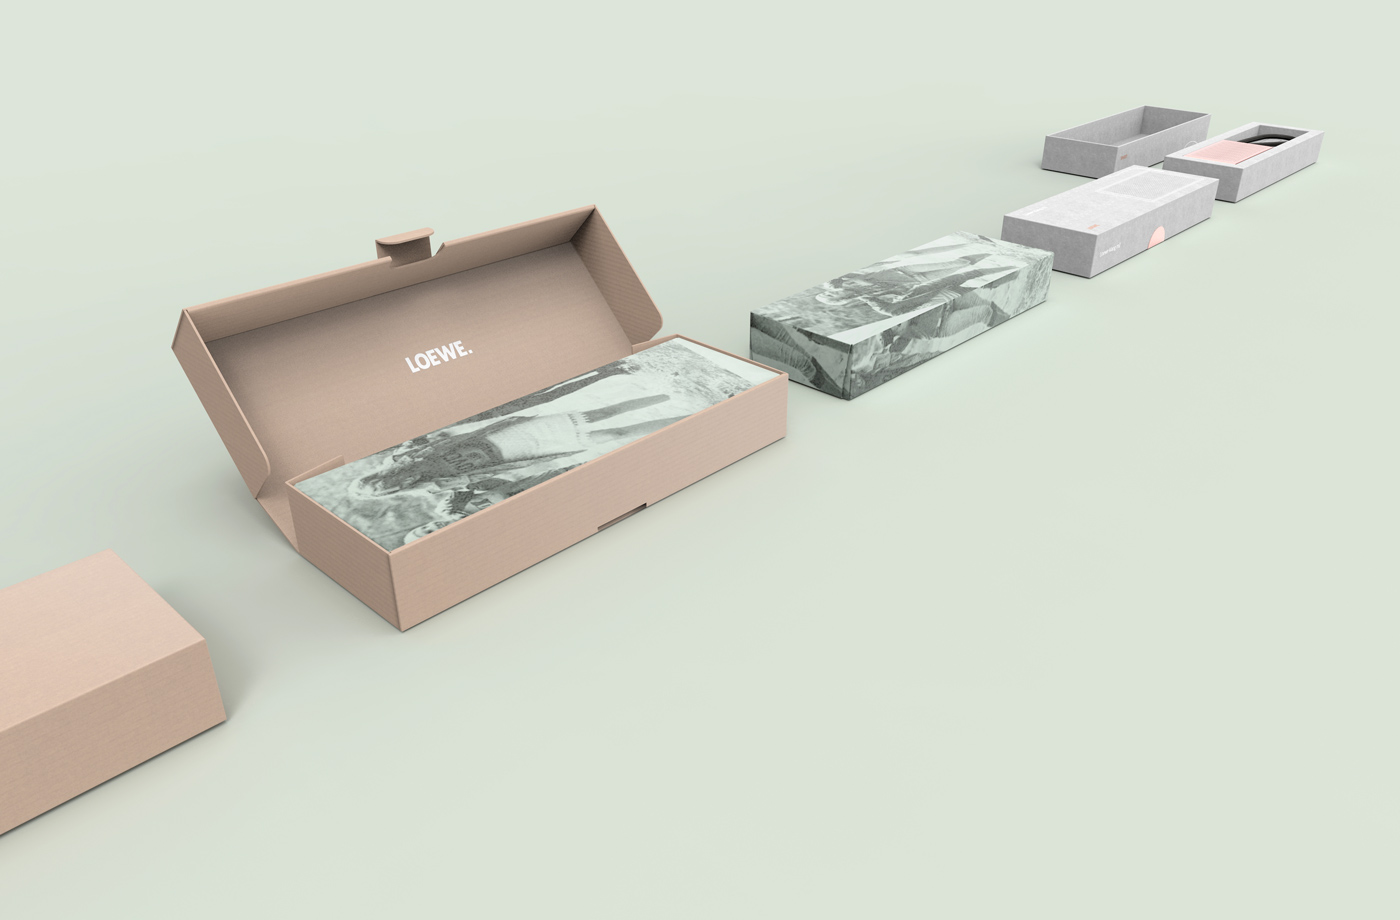 unboxing experience packaging design for loewe